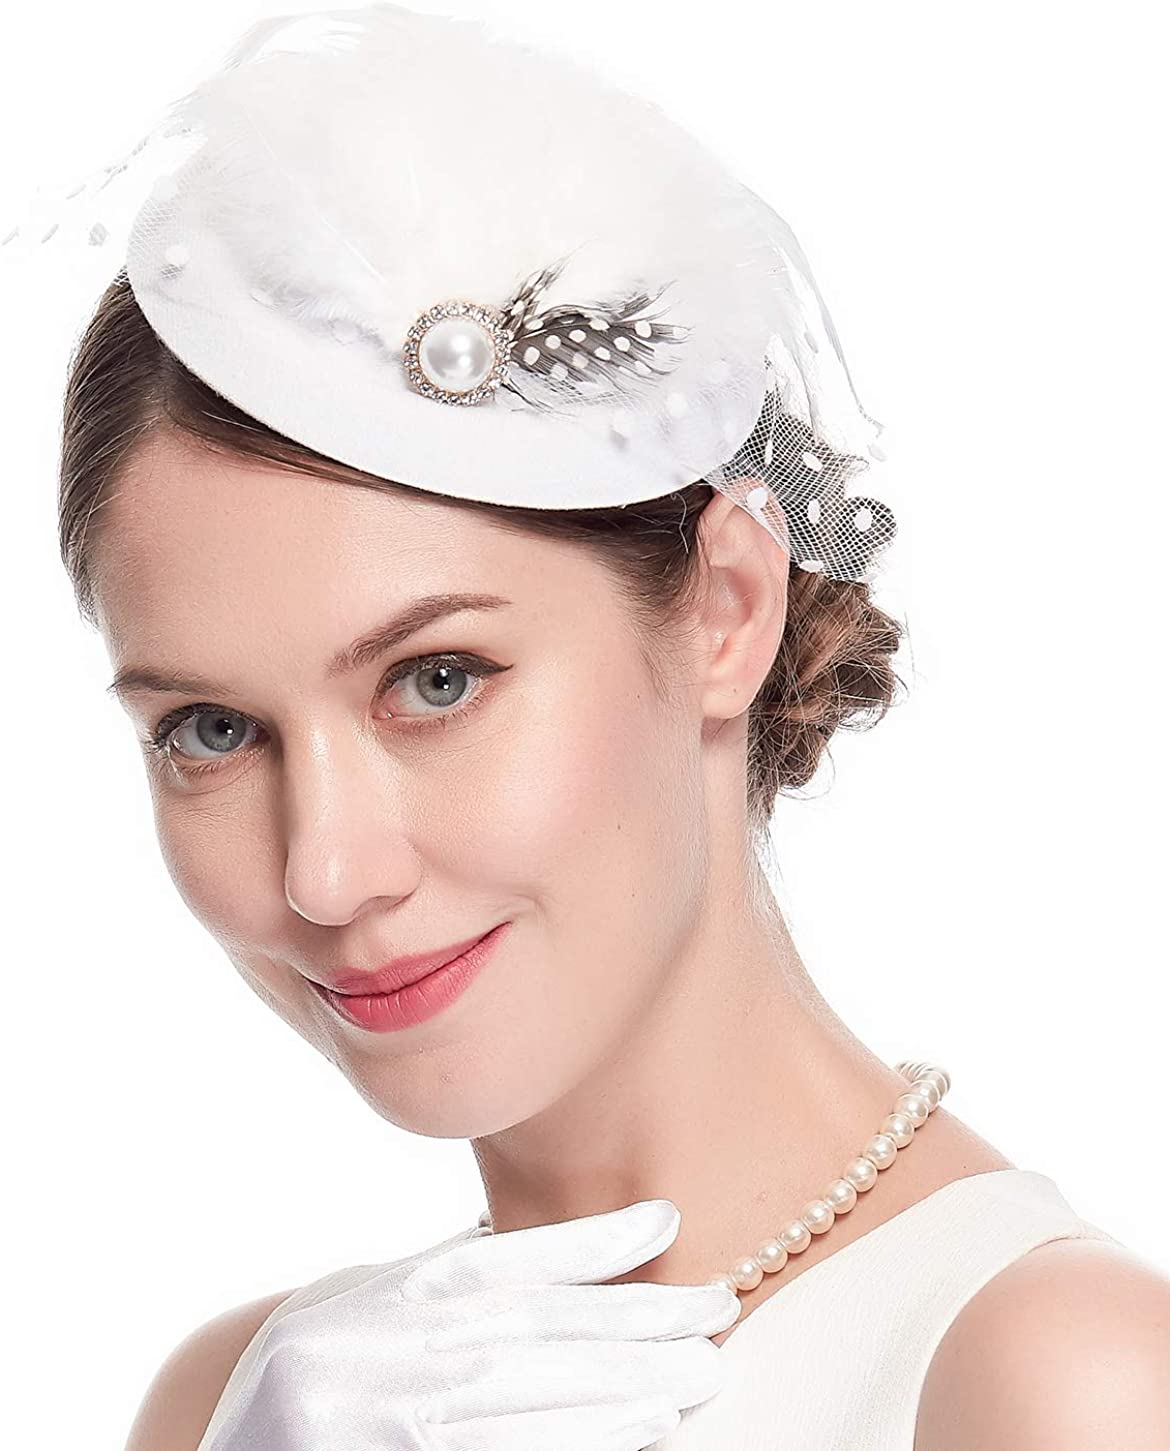 Pillbox Hats 20s 50s Vintage Fascinators for Women with Feather